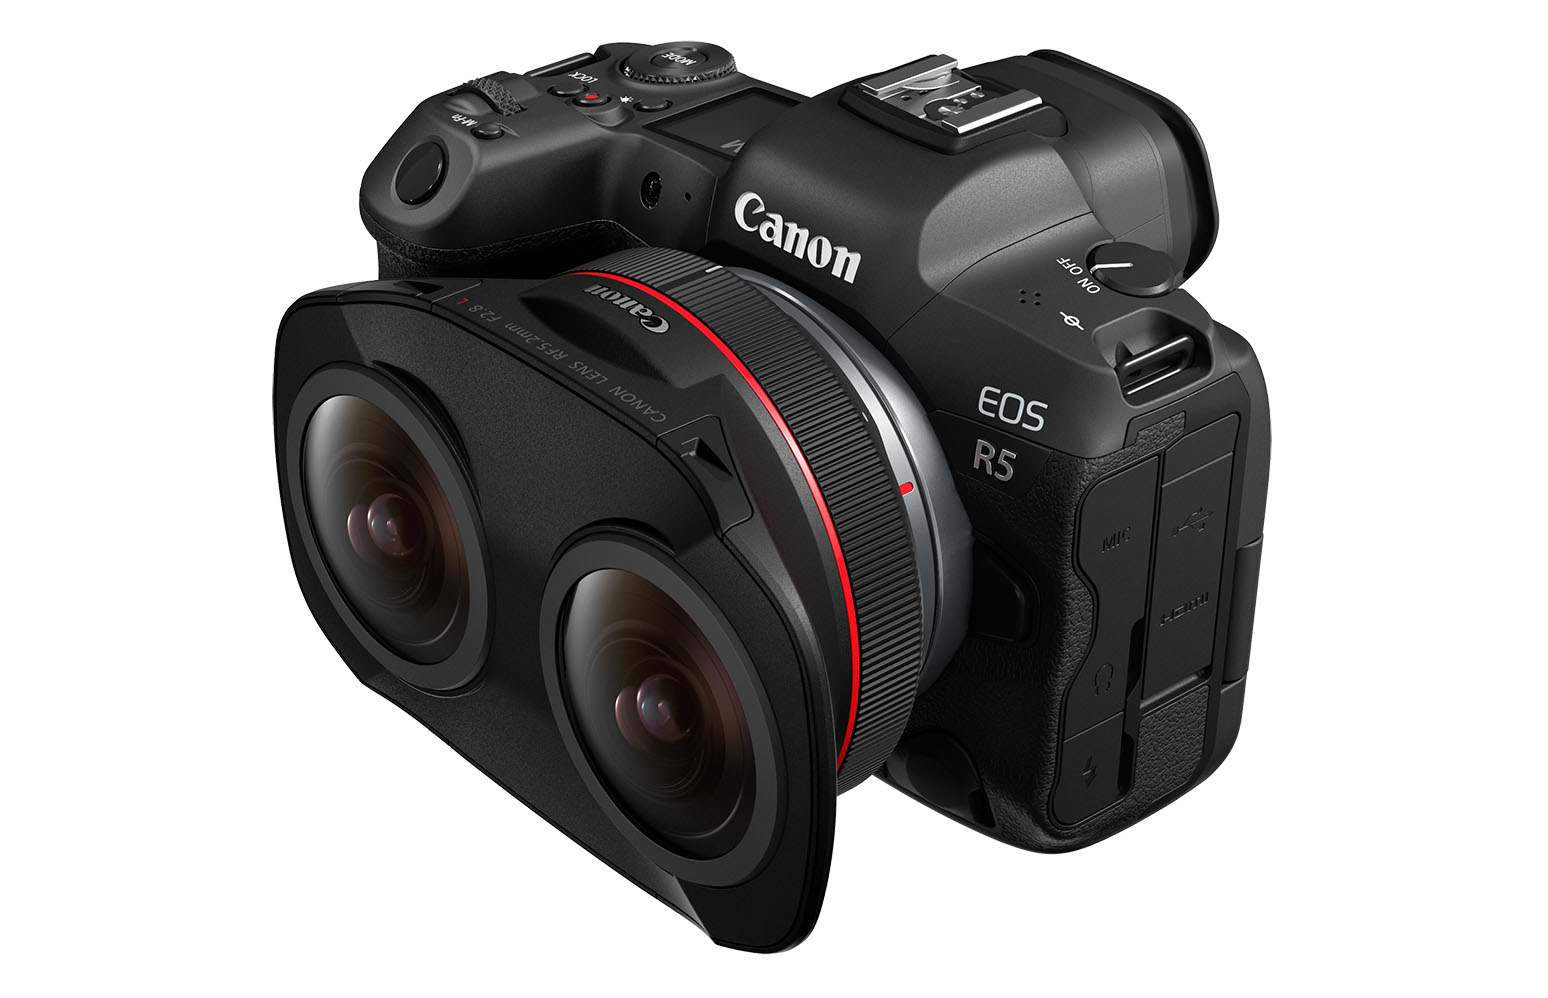 Canon created a dual fisheye lens for its new VR video system